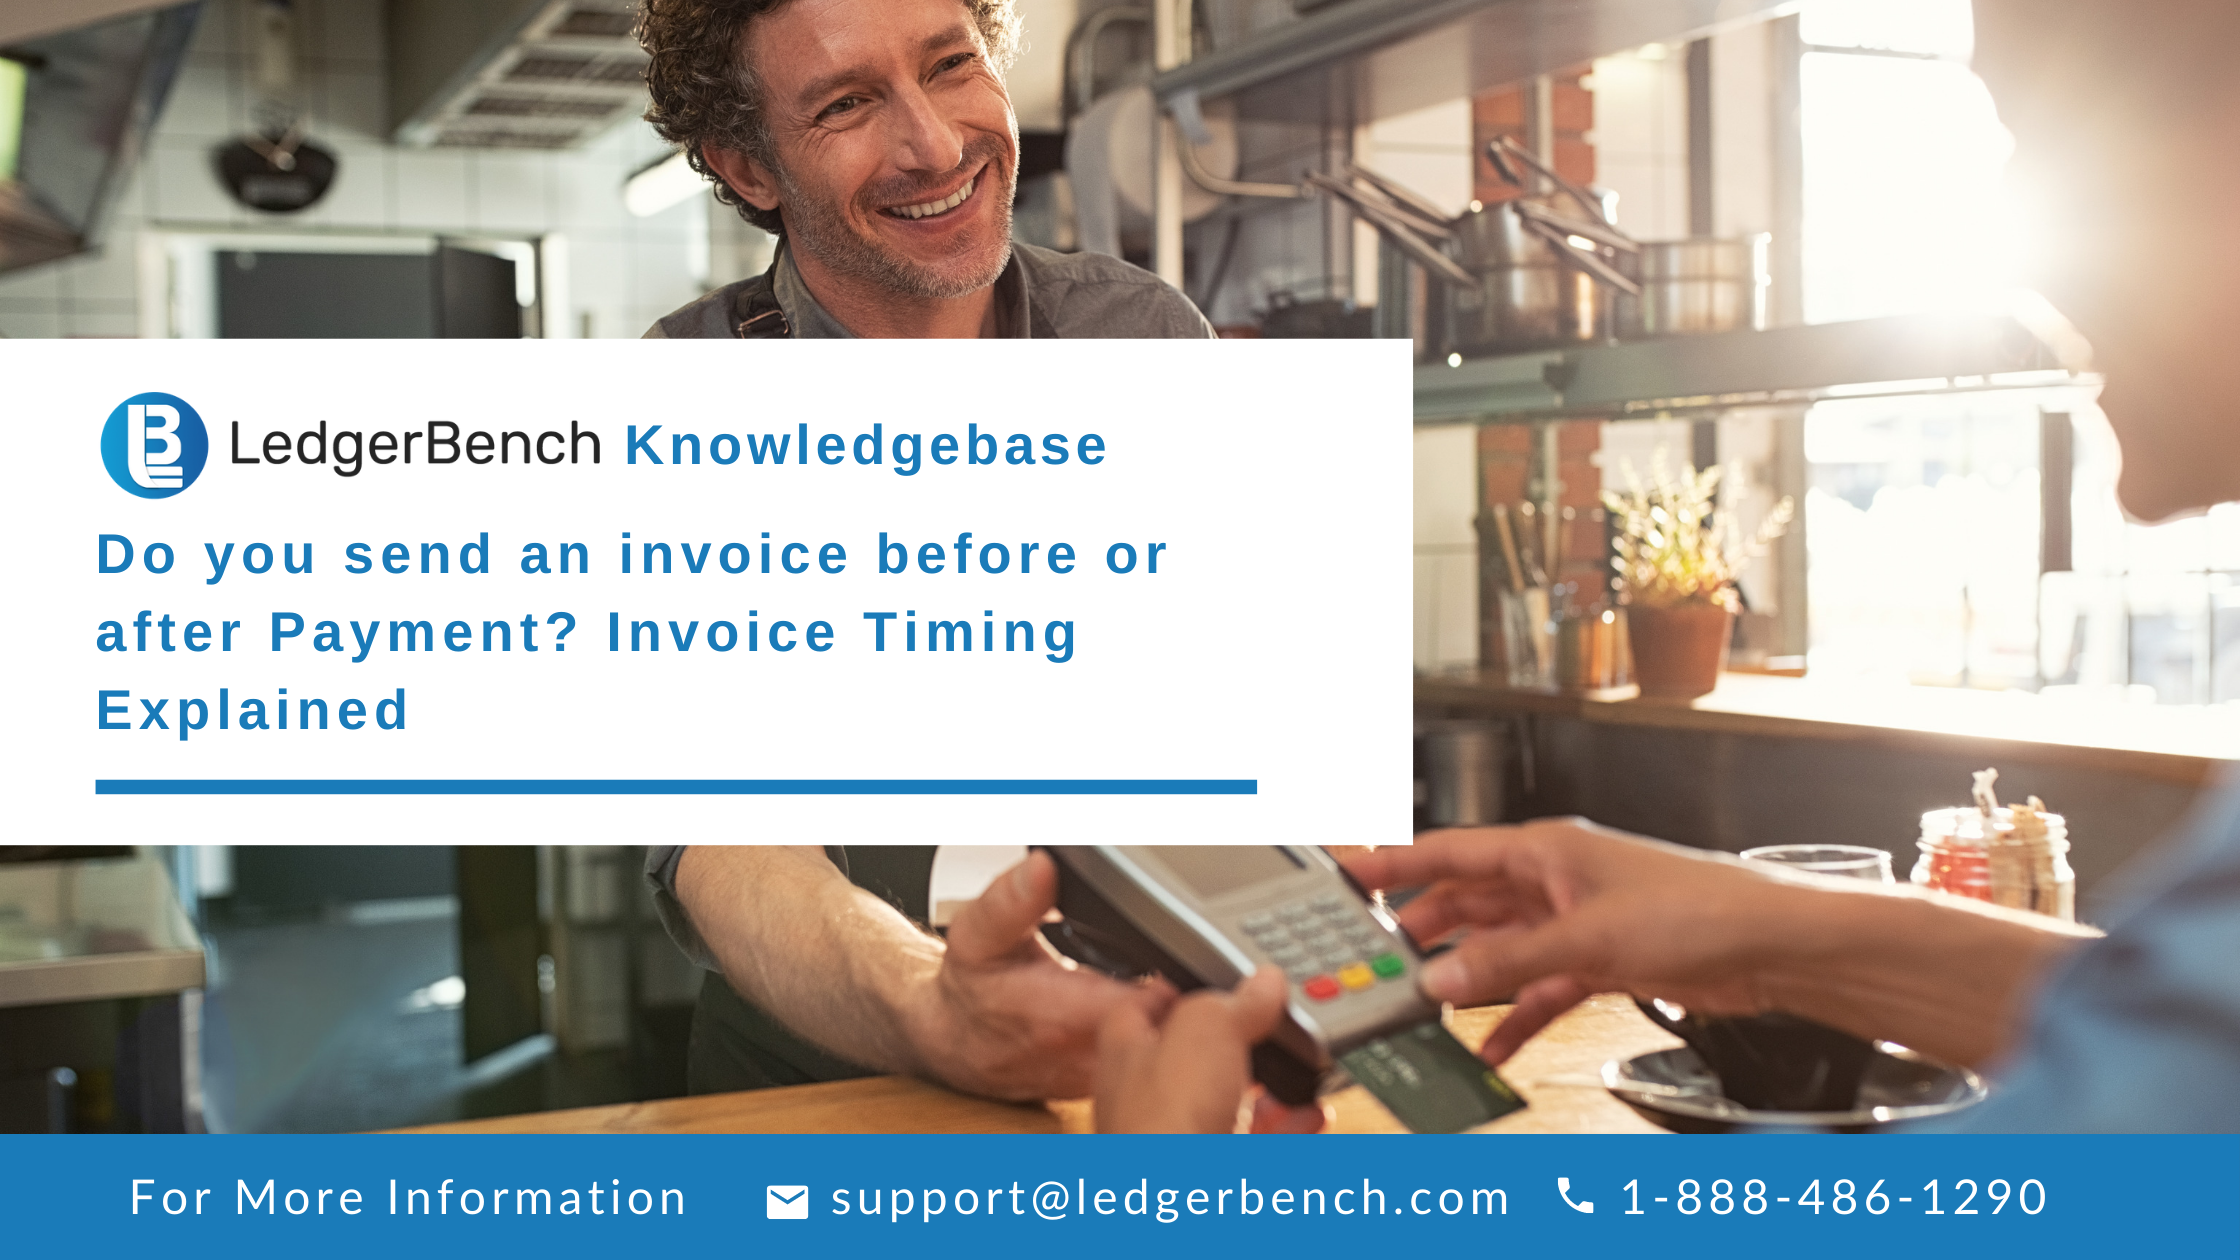 Do you send an invoice before or after Payment? Invoice Timing Explained